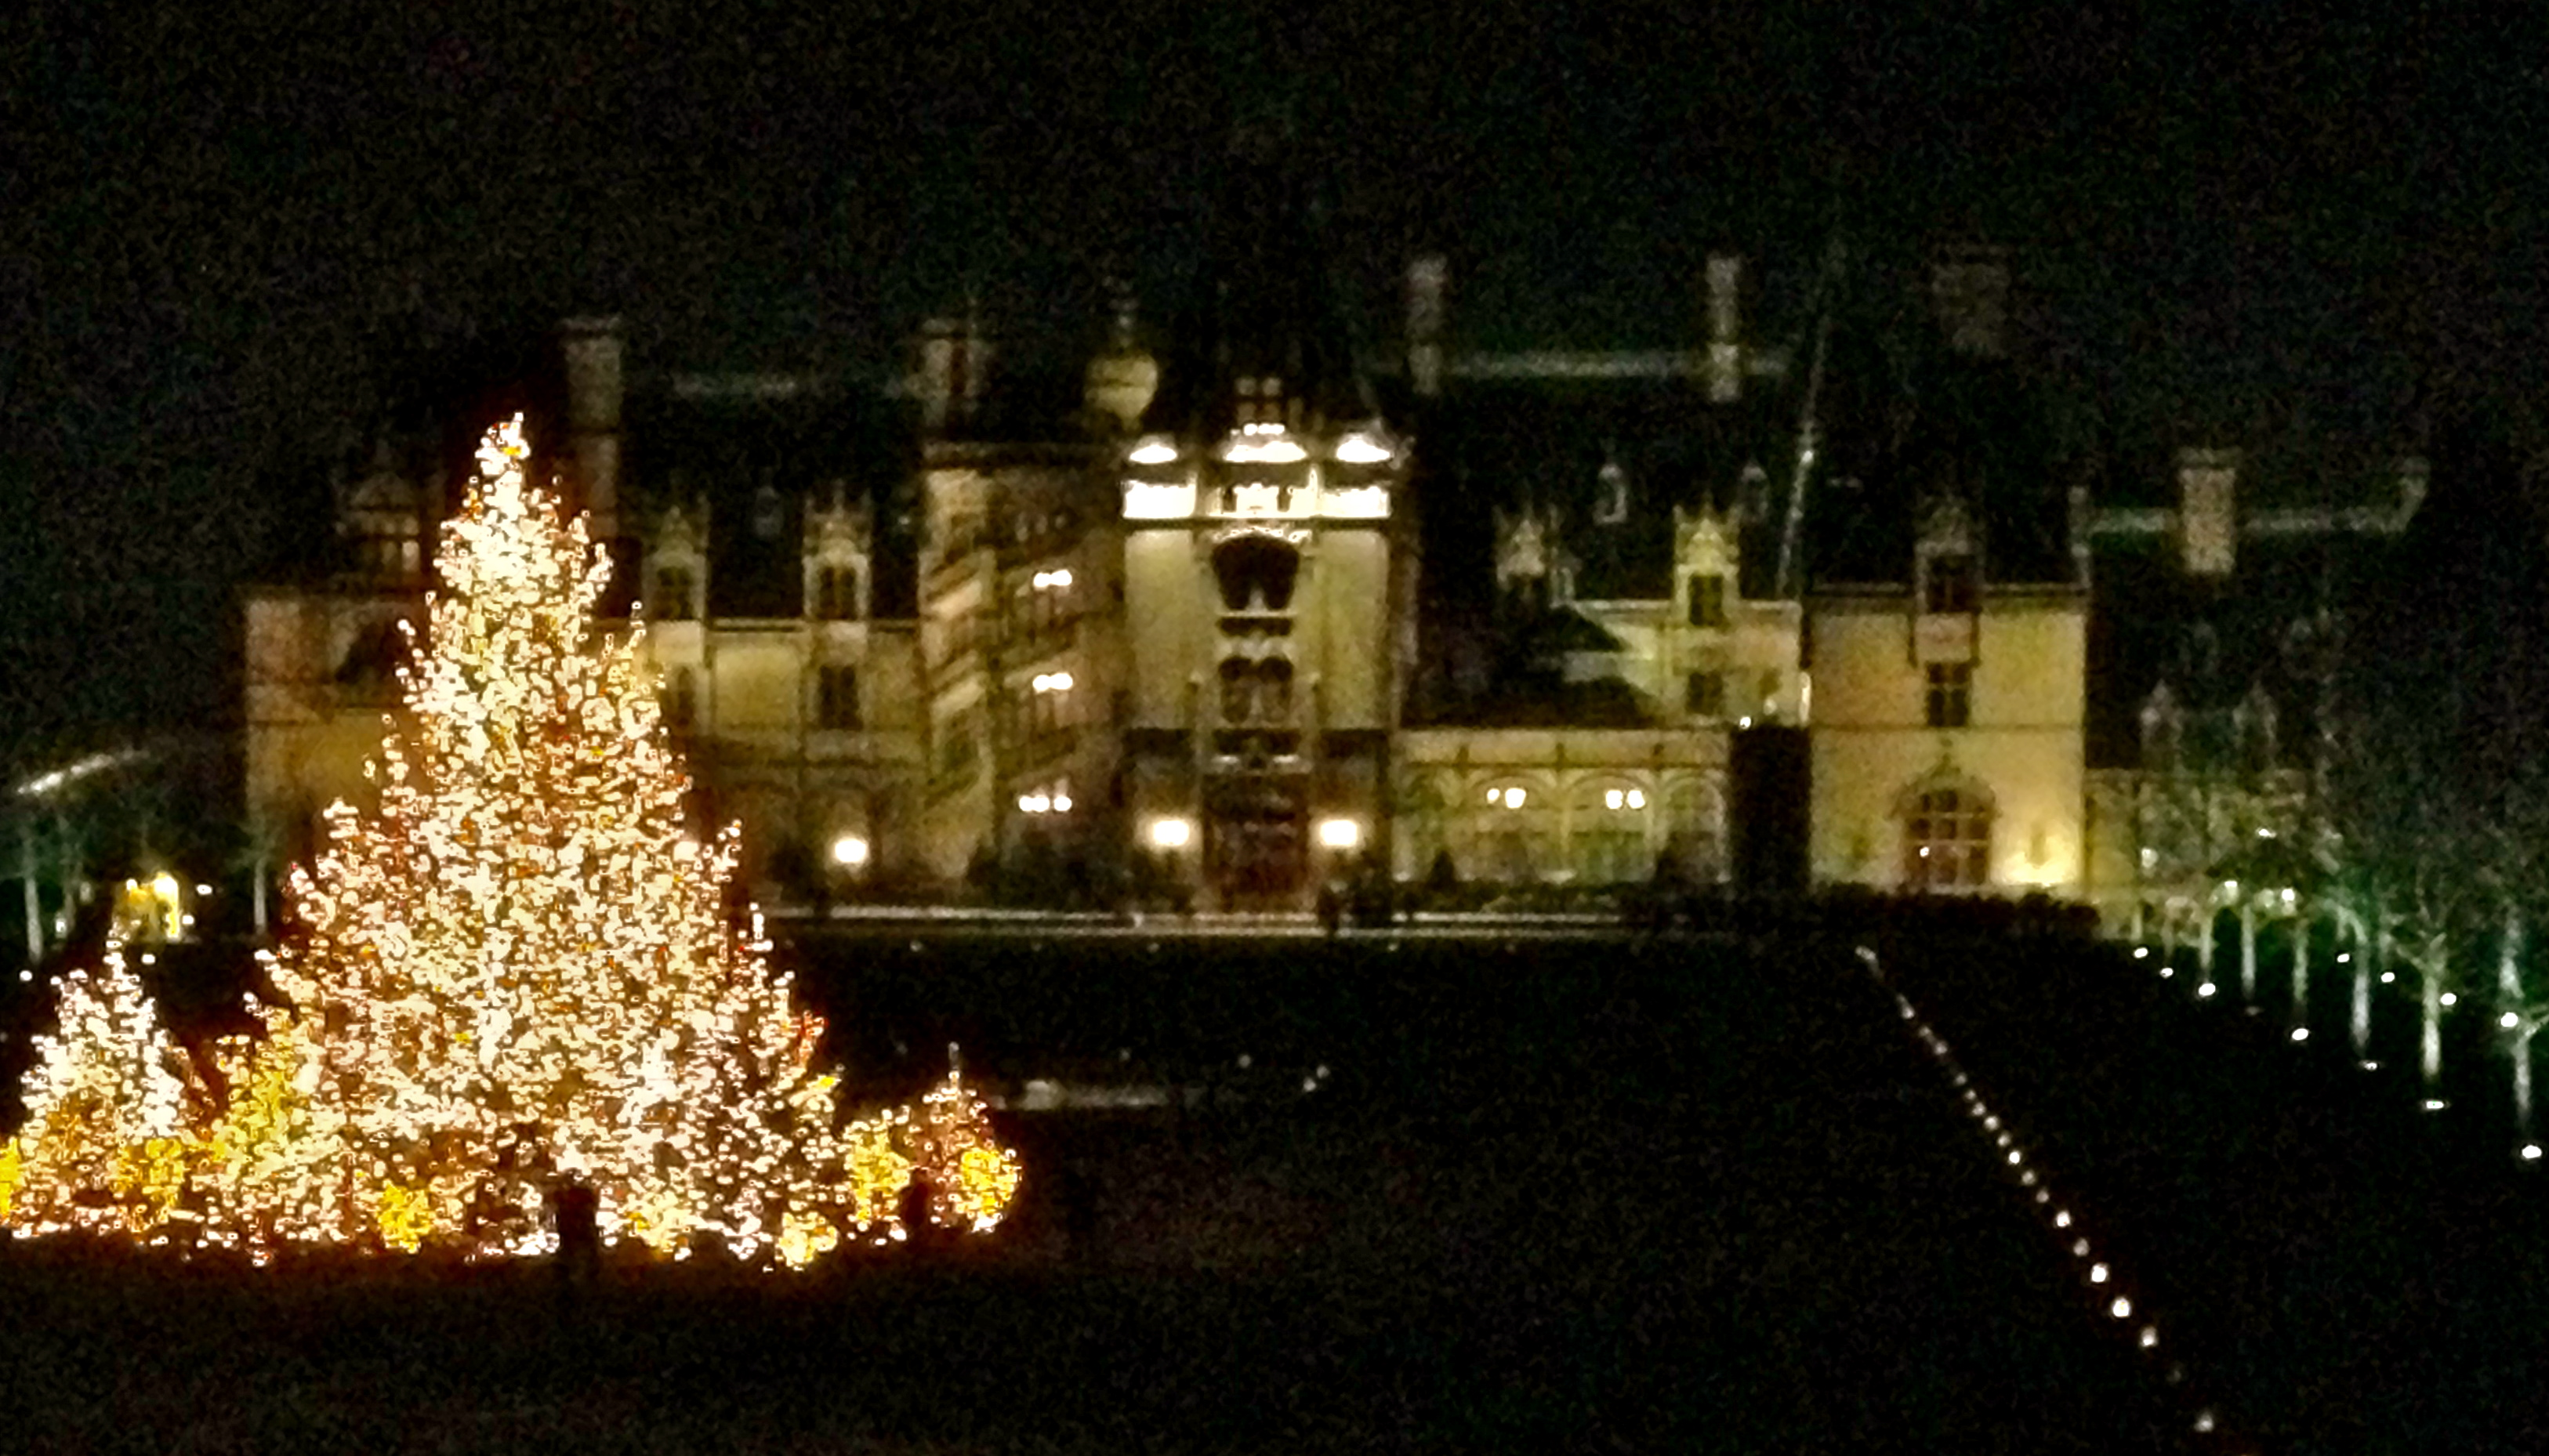 out of town: christmas at the biltmore | Off the Eaten Path